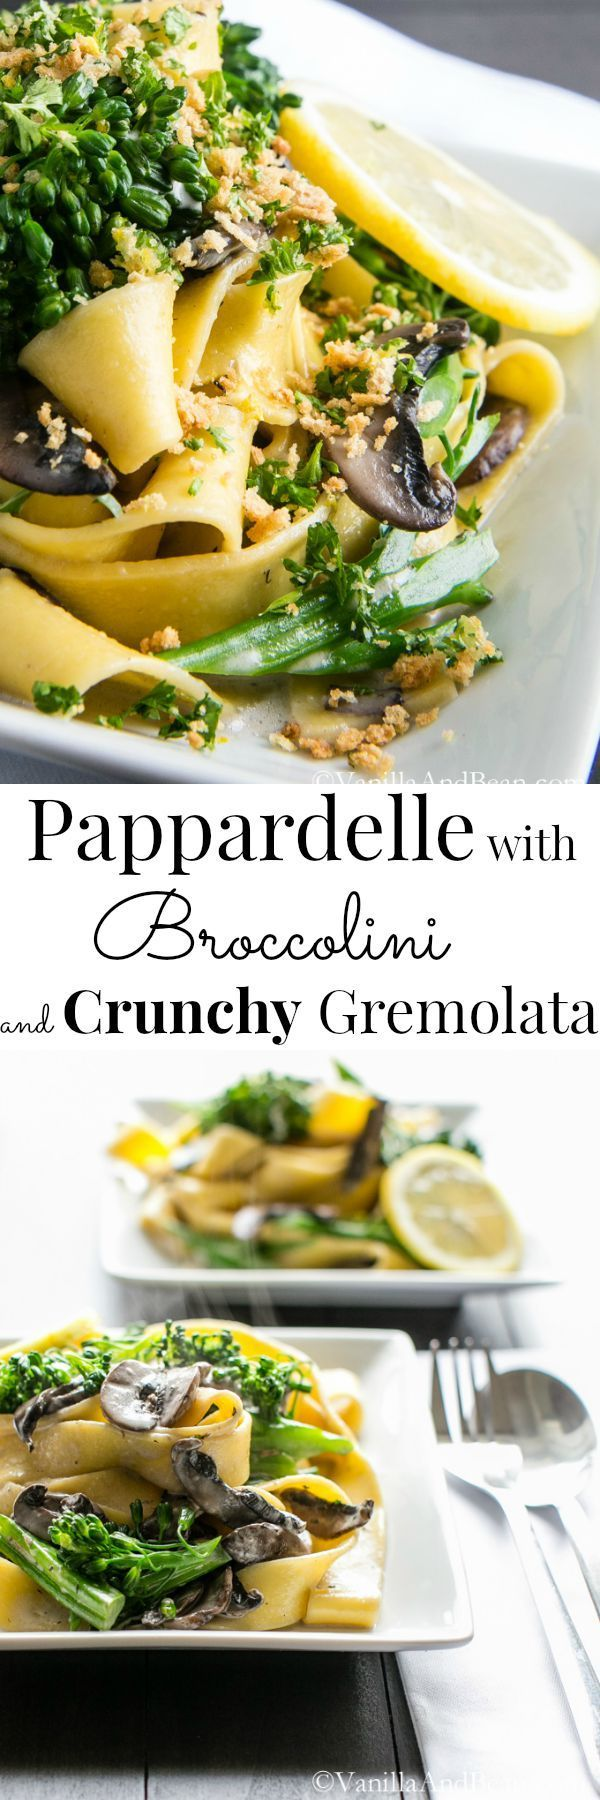 """Pappardelle with Broccolini and Crunchy Gremolata - From Ottolenghi's """"Plenty"""", a quick, elegant and fabulous Vegetarian Pasta   Vanilla And Bean"""